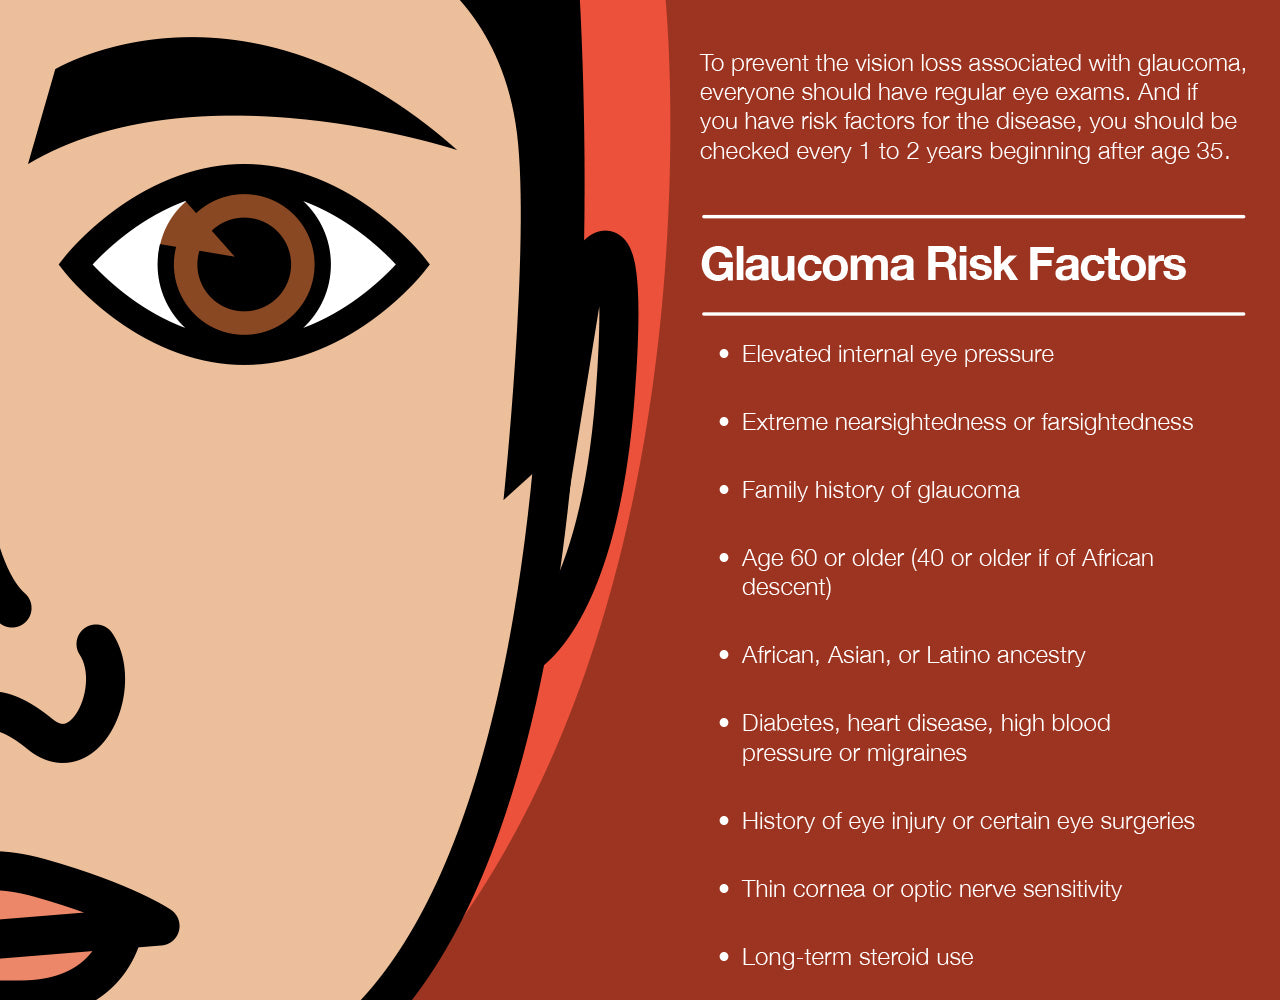 Glaucoma risk factors